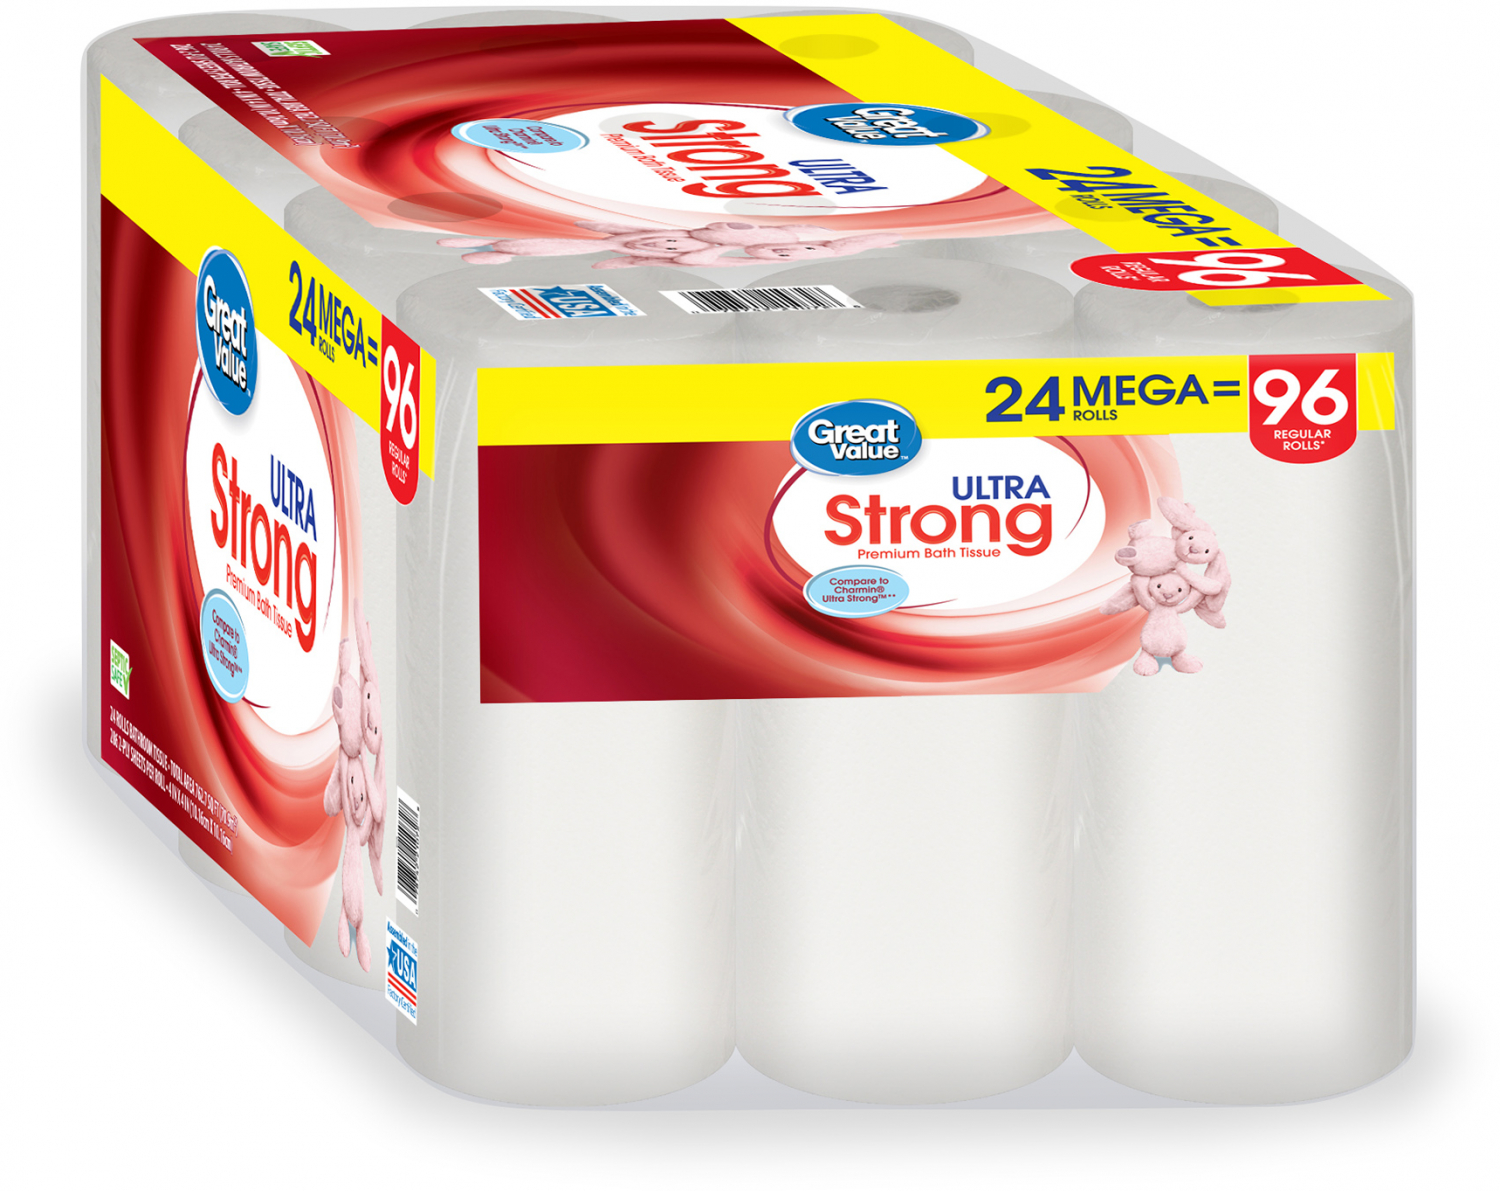 24-Mega-Rolls-Toilet-Paper-Ultra-Strong-2-Ply-Soft-Bath-Tissue-Save-Great-Value thumbnail 20